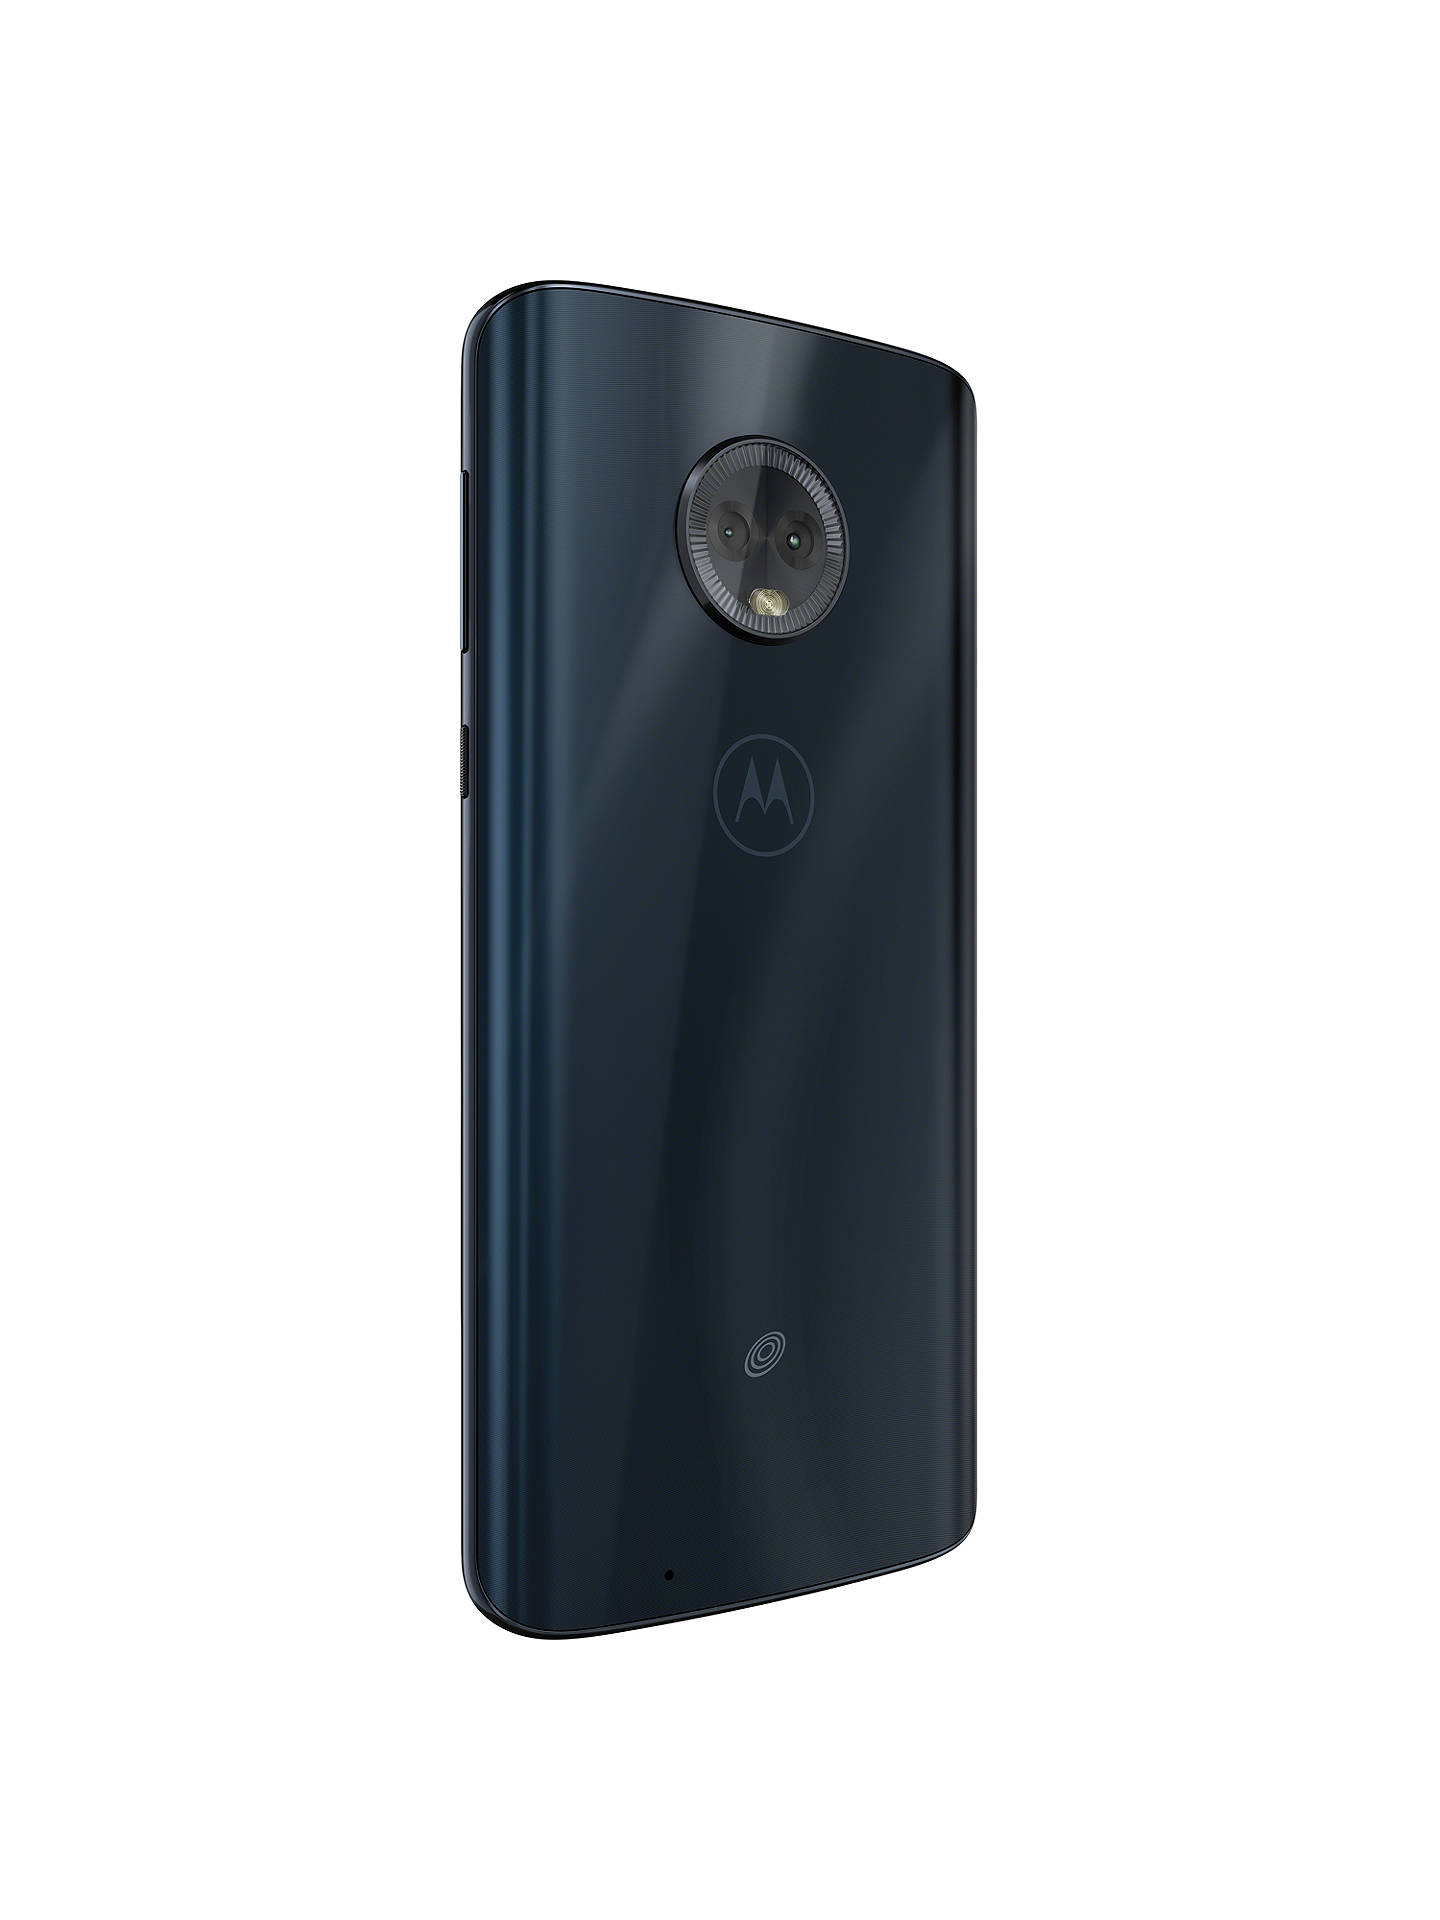 "Buy Motorola g6 Dual SIM Smartphone, Android, 5.7"", 4G LTE, SIM Free, 32GB, Purple Online at johnlewis.com"